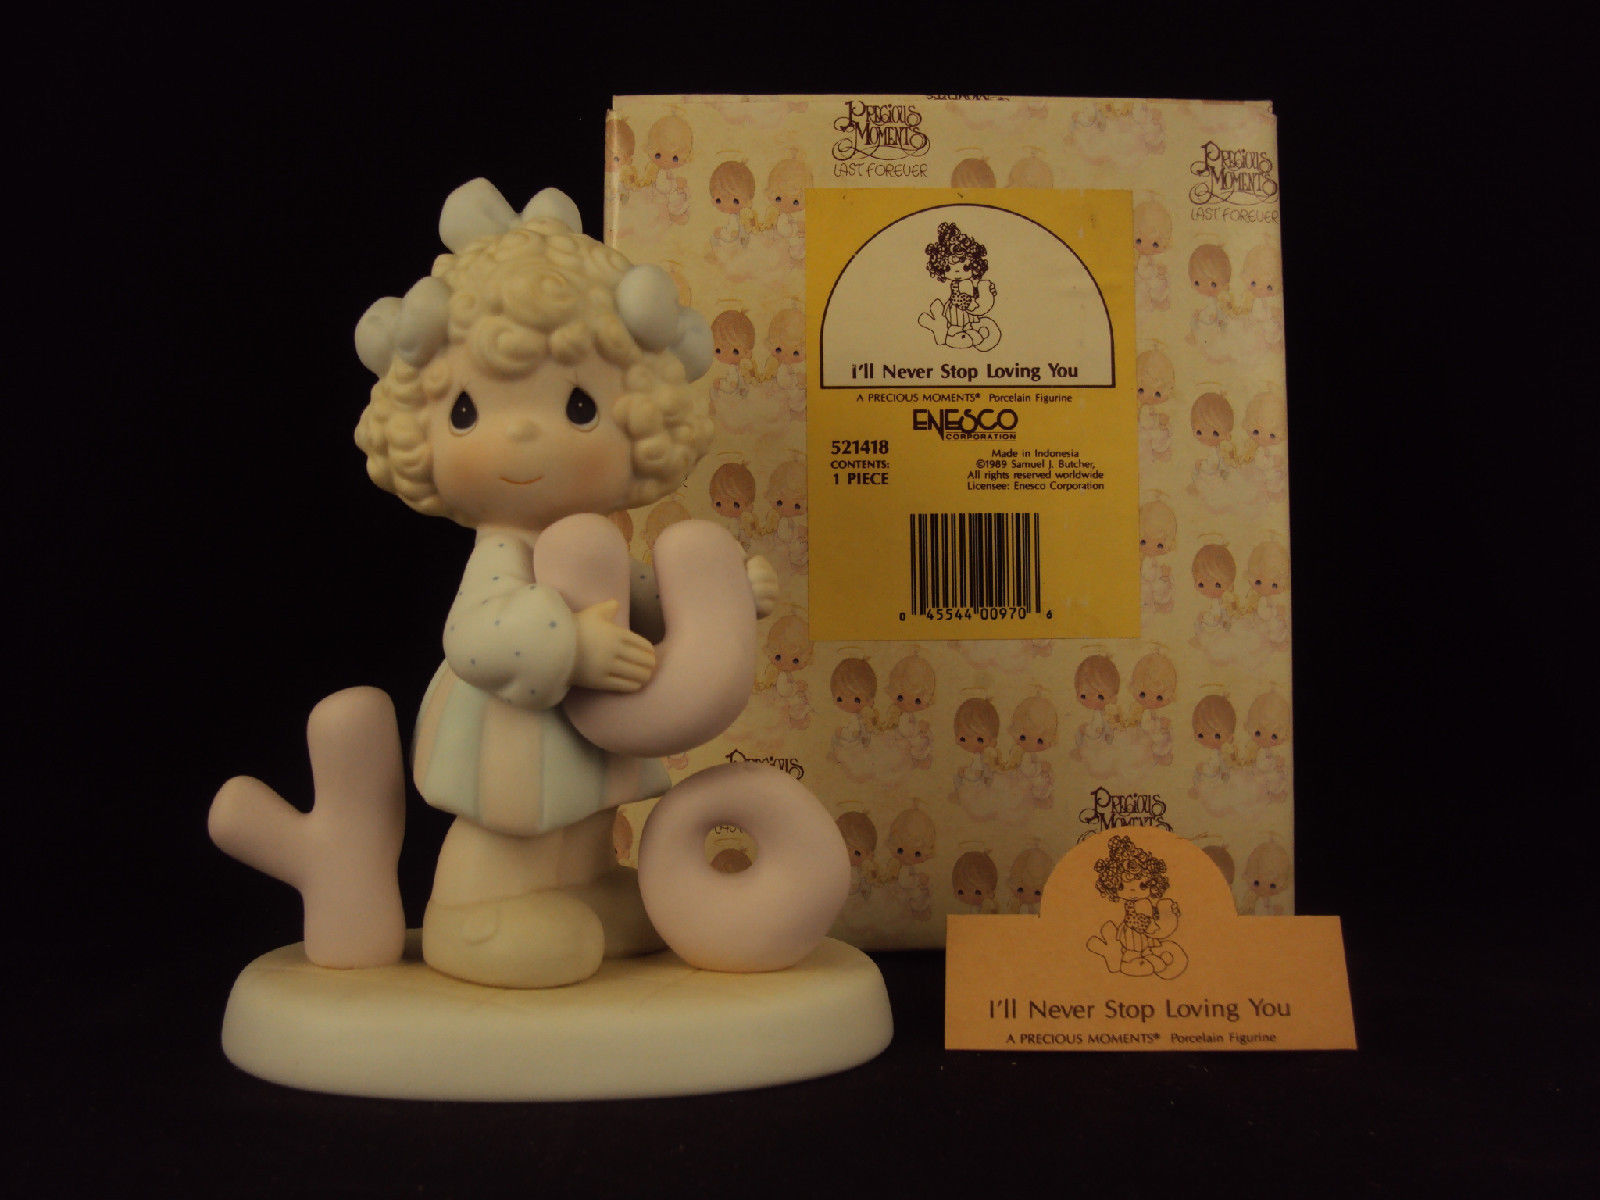 Primary image for Precious Moments Figurine, #521418, I'll Never Stop Loving You, Flame Mark, 1989